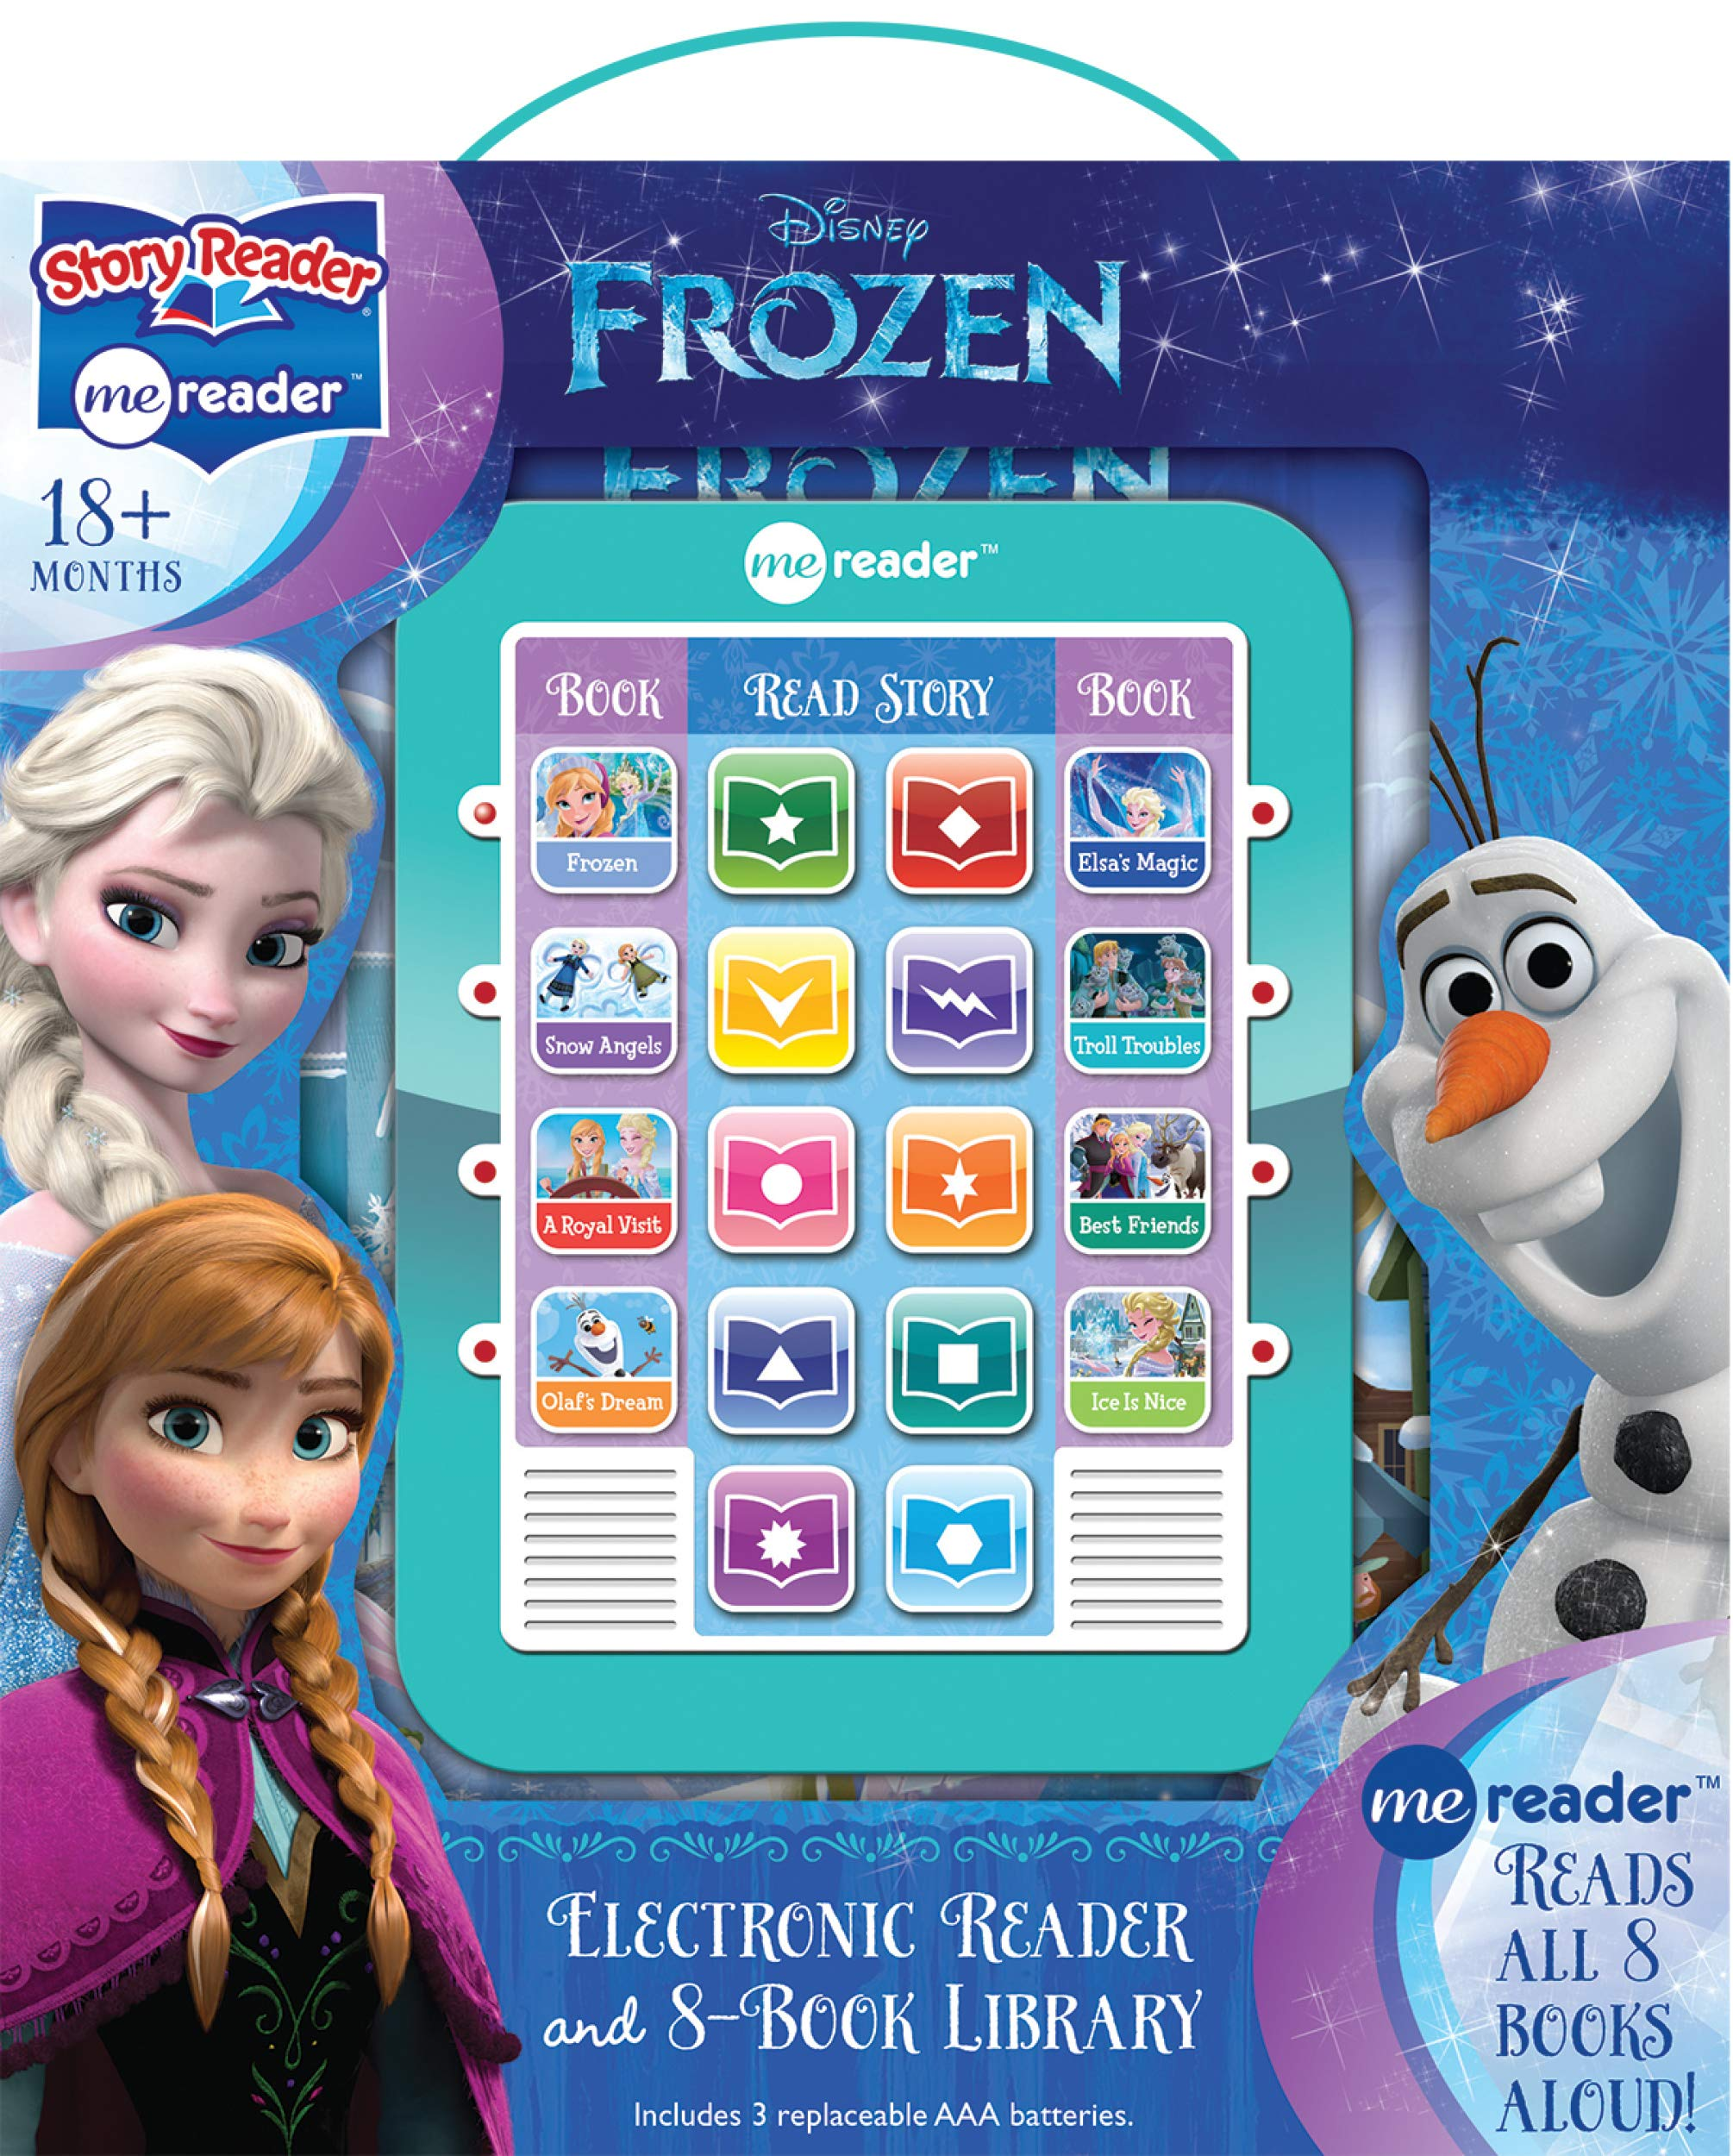 Disney Frozen Elsa, Anna, Olaf, and More! – Me Reader Electronic Reader and 8-Sound Book Library – PI Kids